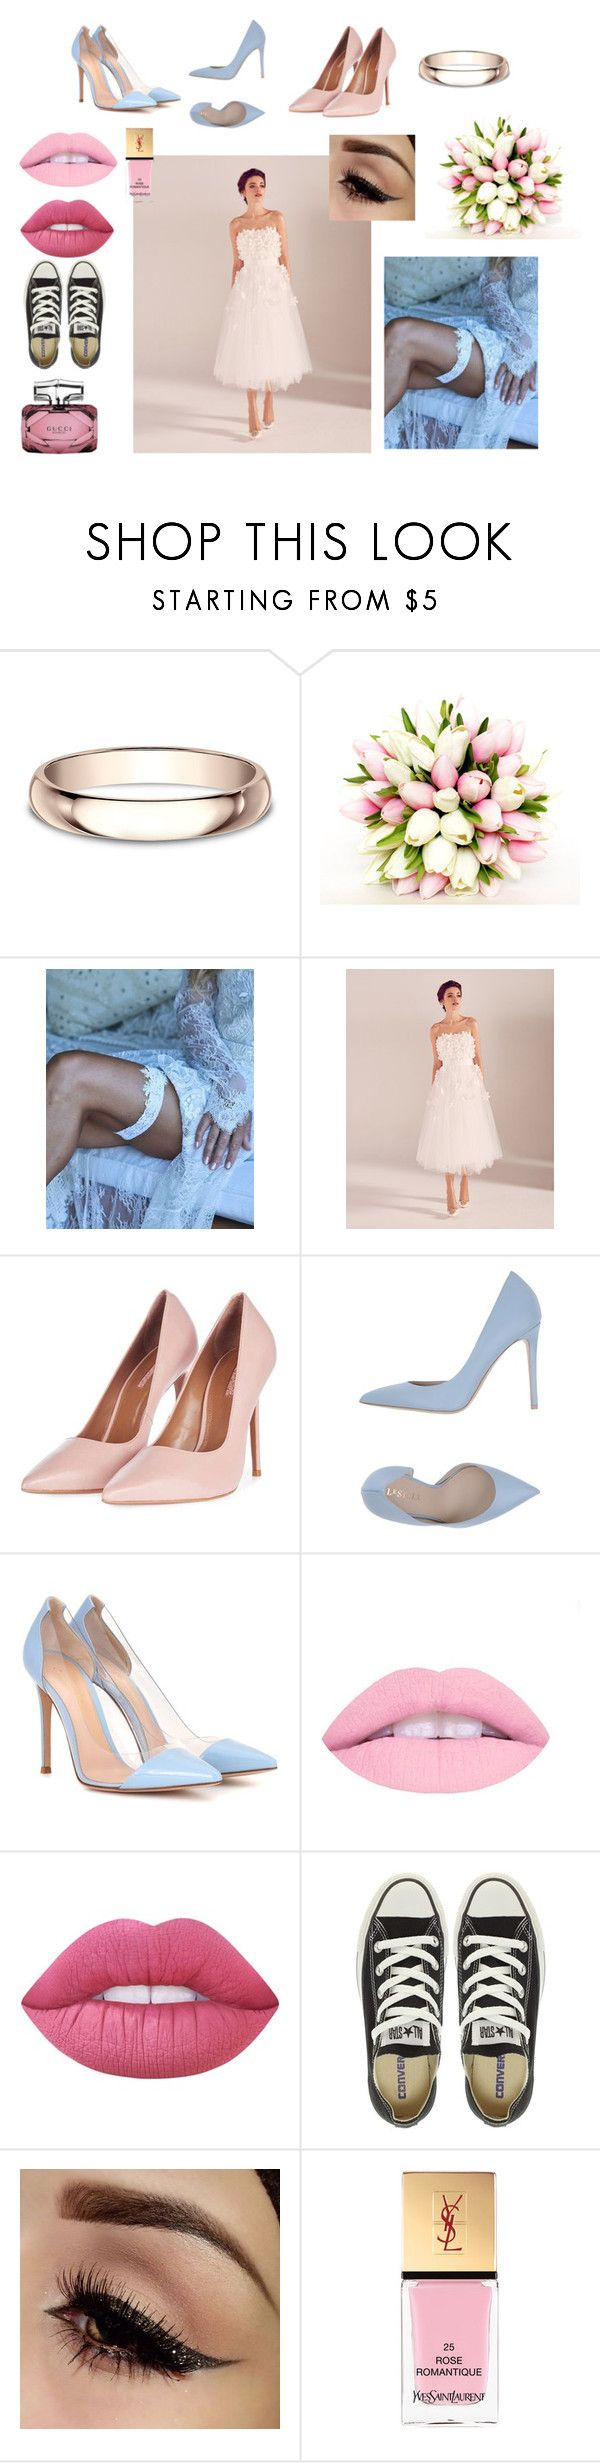 """This special day set"" by sweetlittlebunny on Polyvore featuring moda, Modern Bride, Ted Baker, Topshop, Le Silla, Gianvito Rossi, Lime Crime, Converse, Yves Saint Laurent i Gucci"